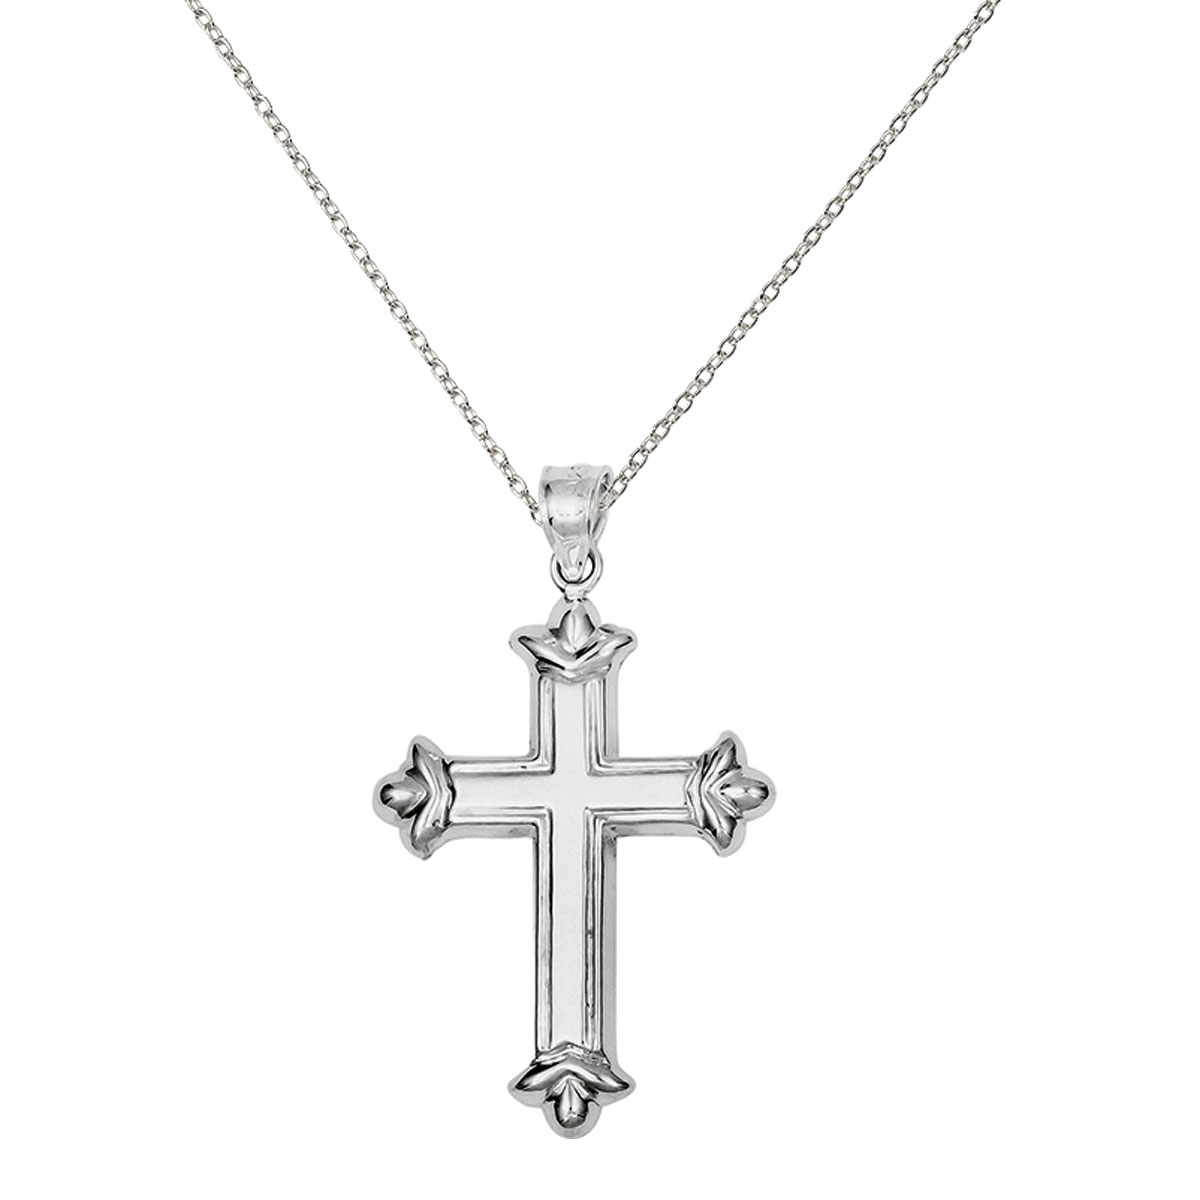 Sterling Silver Rhodium-plated Fleur-de-lis Cross Pendant